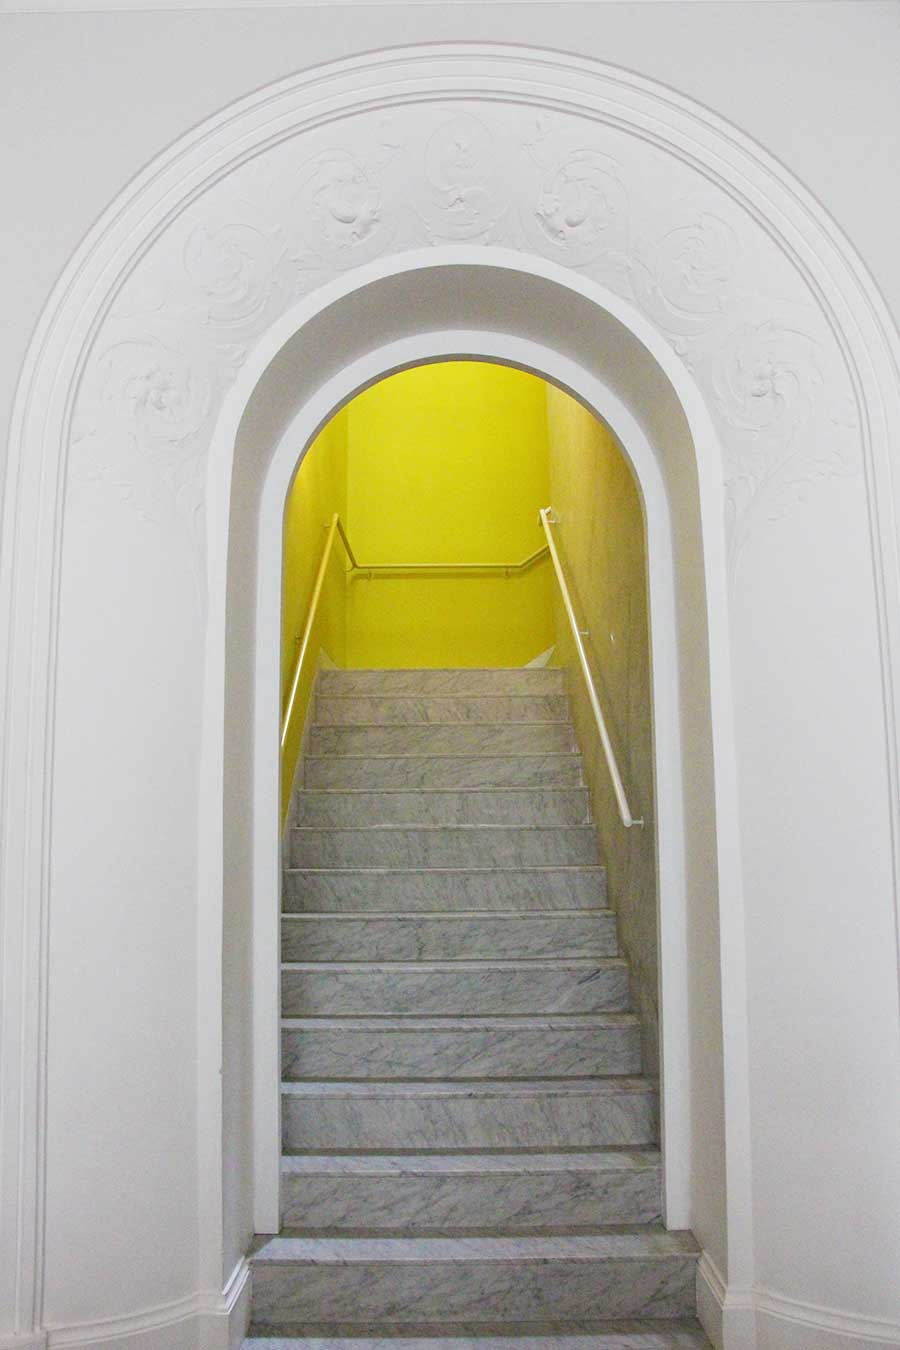 arc-interiors-stairs-colonial-arquitecture-lima-peru.jpg